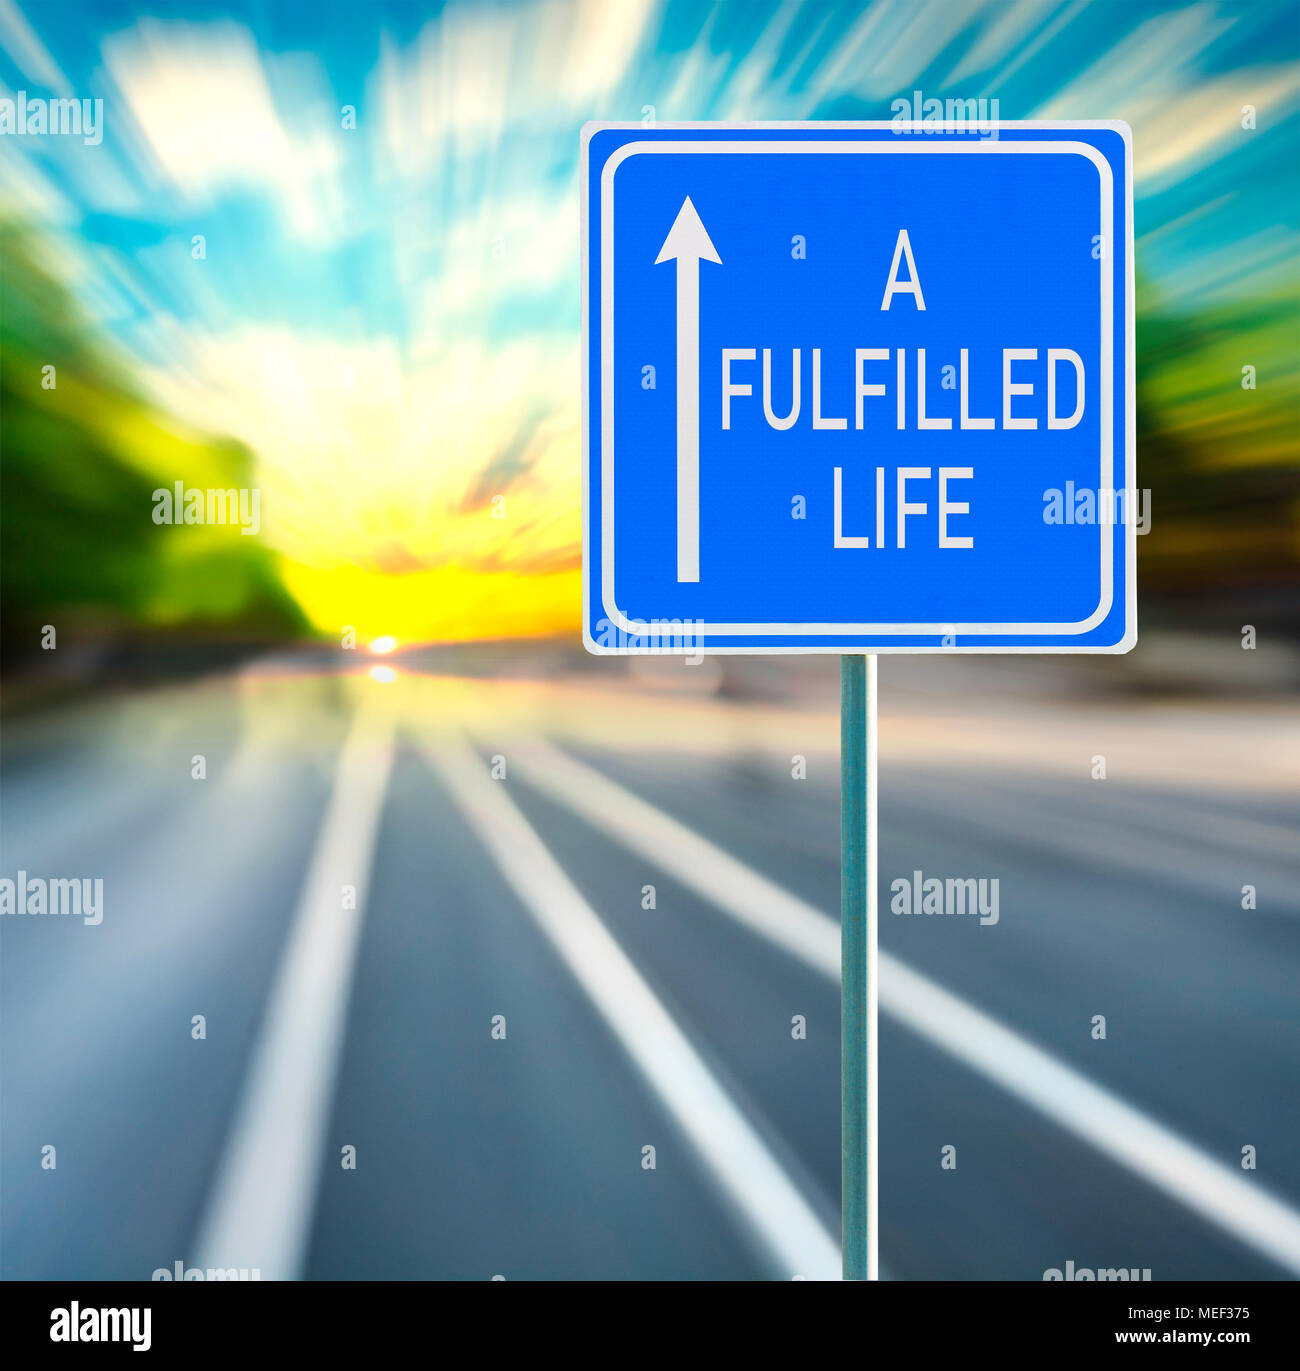 A Fulfilled Life Road Sign on a Speedy Background with Sunset. - Stock Image